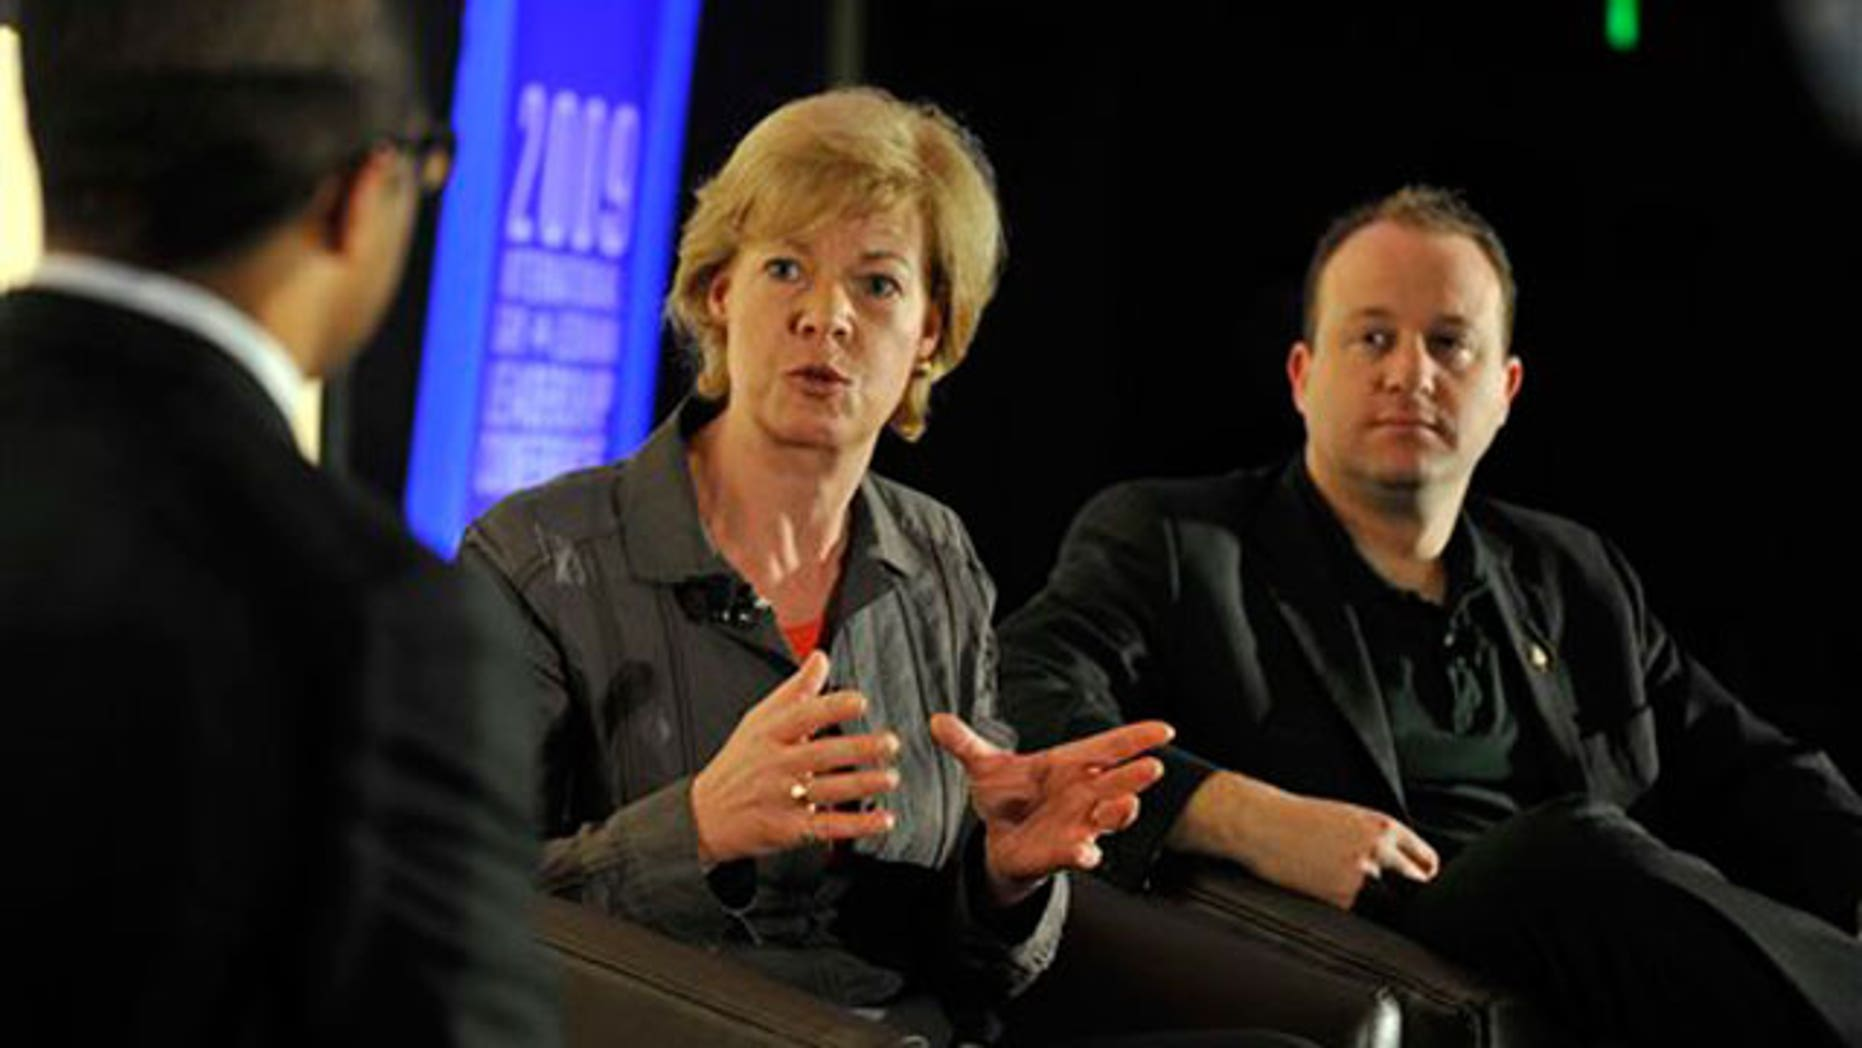 FILE: U.S. Rep. Tammy Baldwin, center, and U.S. Rep. Jared Polis, right, both openly gay members of Congress.